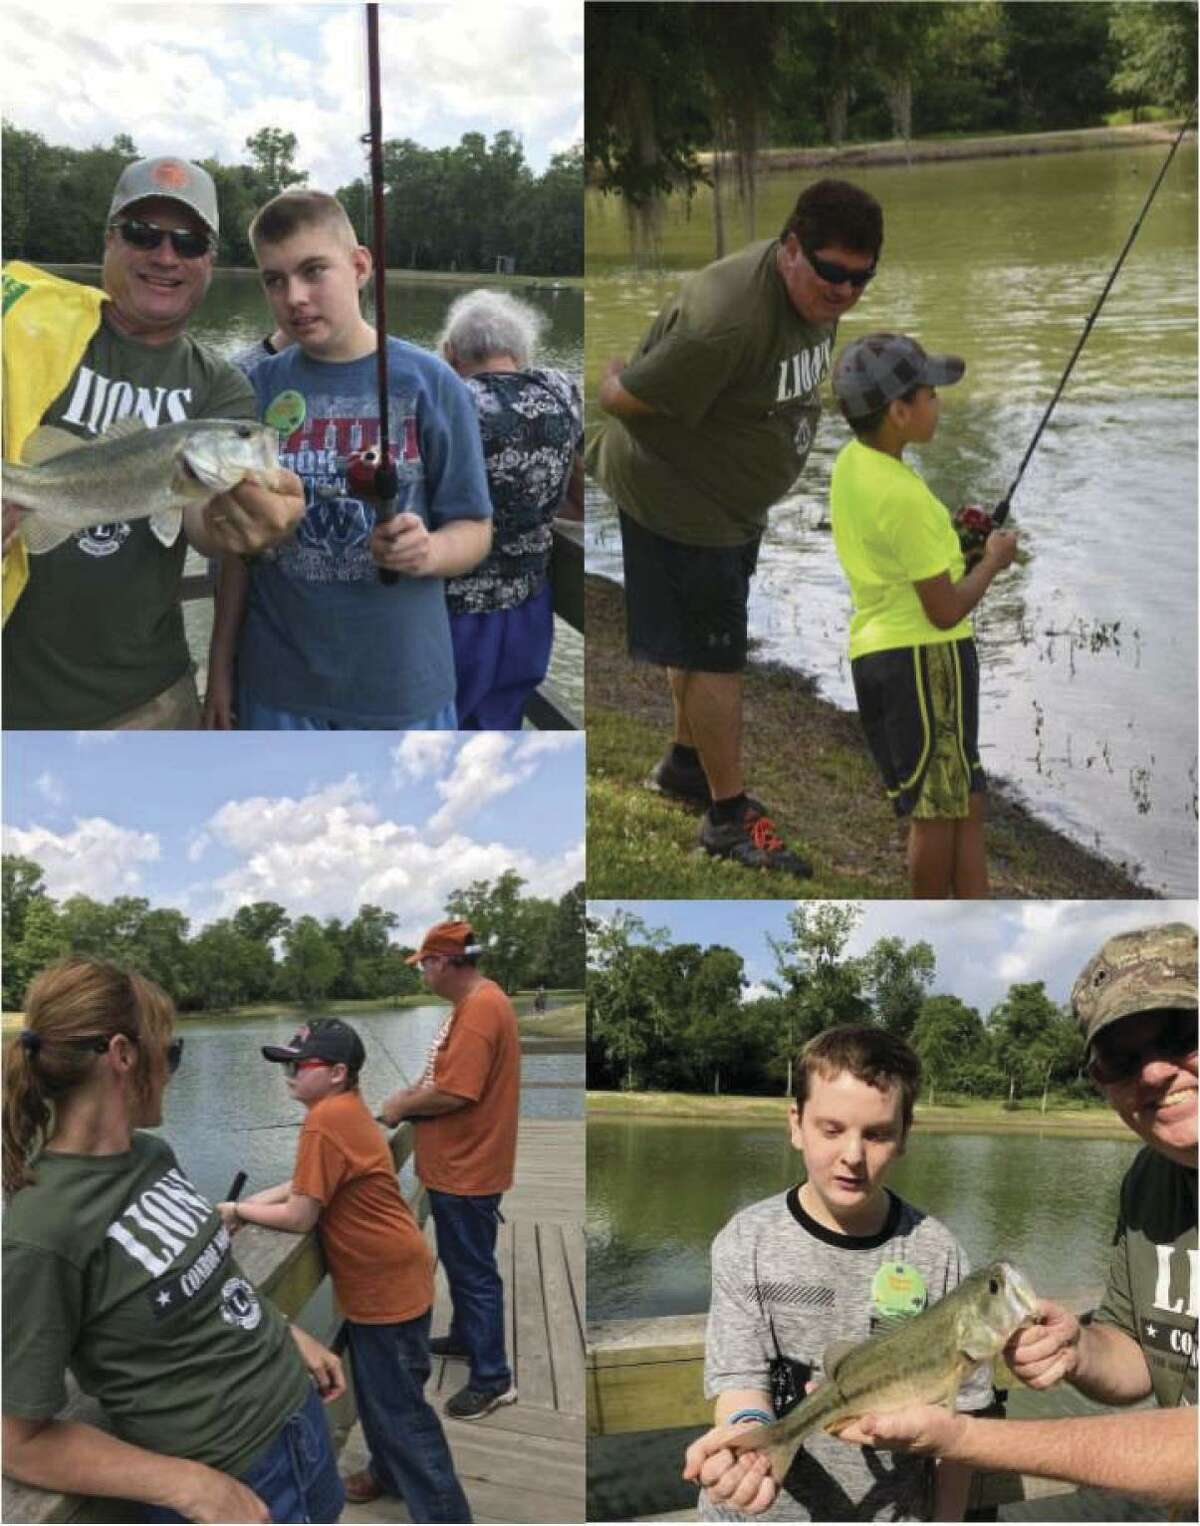 This Saturday, May 11, the Conroe Noon Lions Club will host their annual 'kids on the lake' - fishing tournament of special needs children at the Conroe YMCA; to register contact the club office at 936-760-1666.